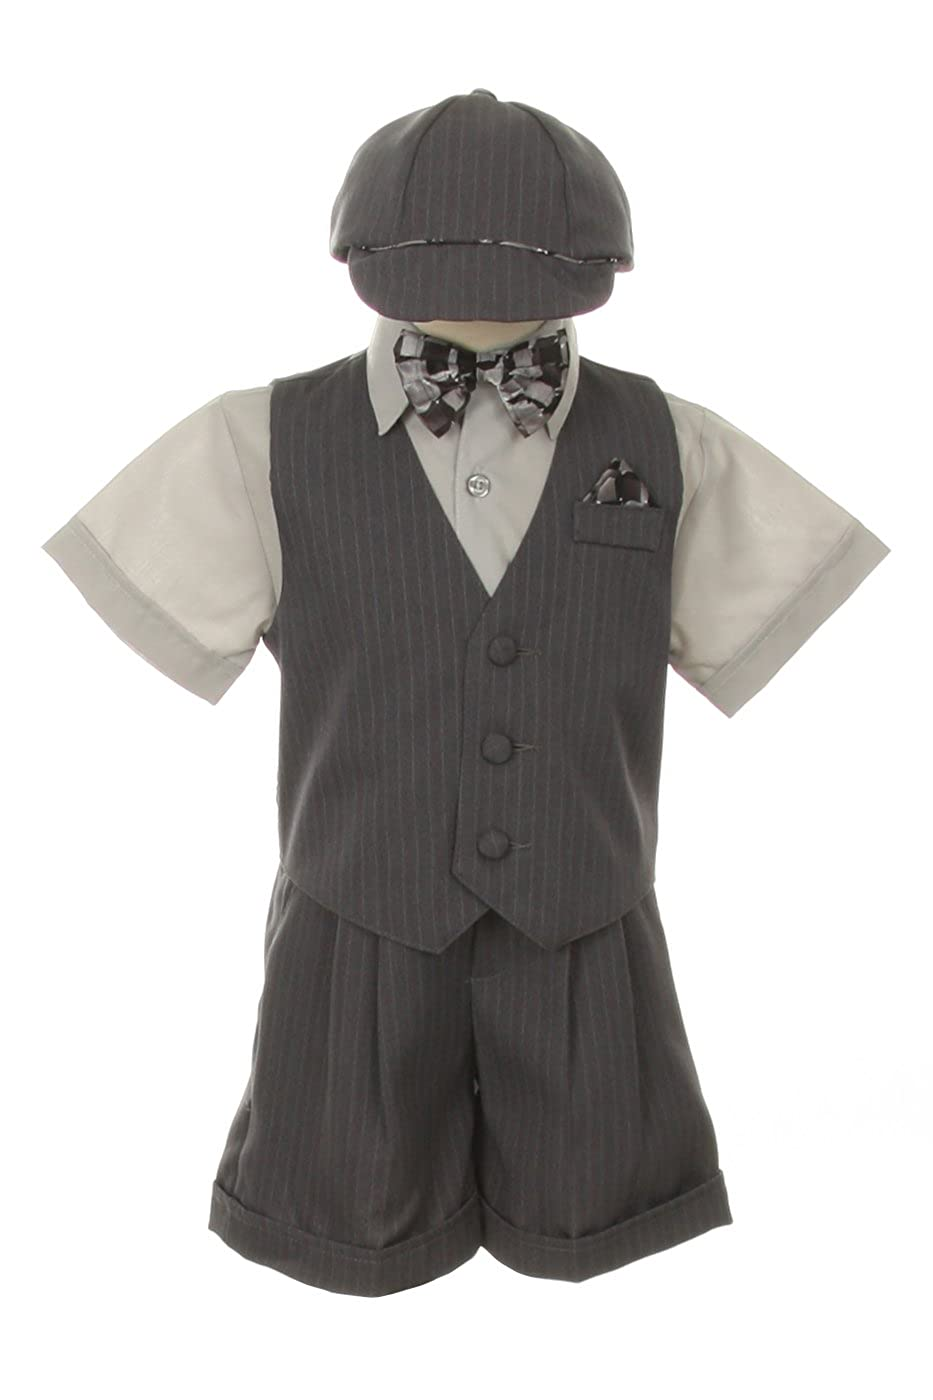 Dress Shorts Suit Tuxedo Outfit Set-Infant Baby Boys & Toddler,Gray Pinstripe